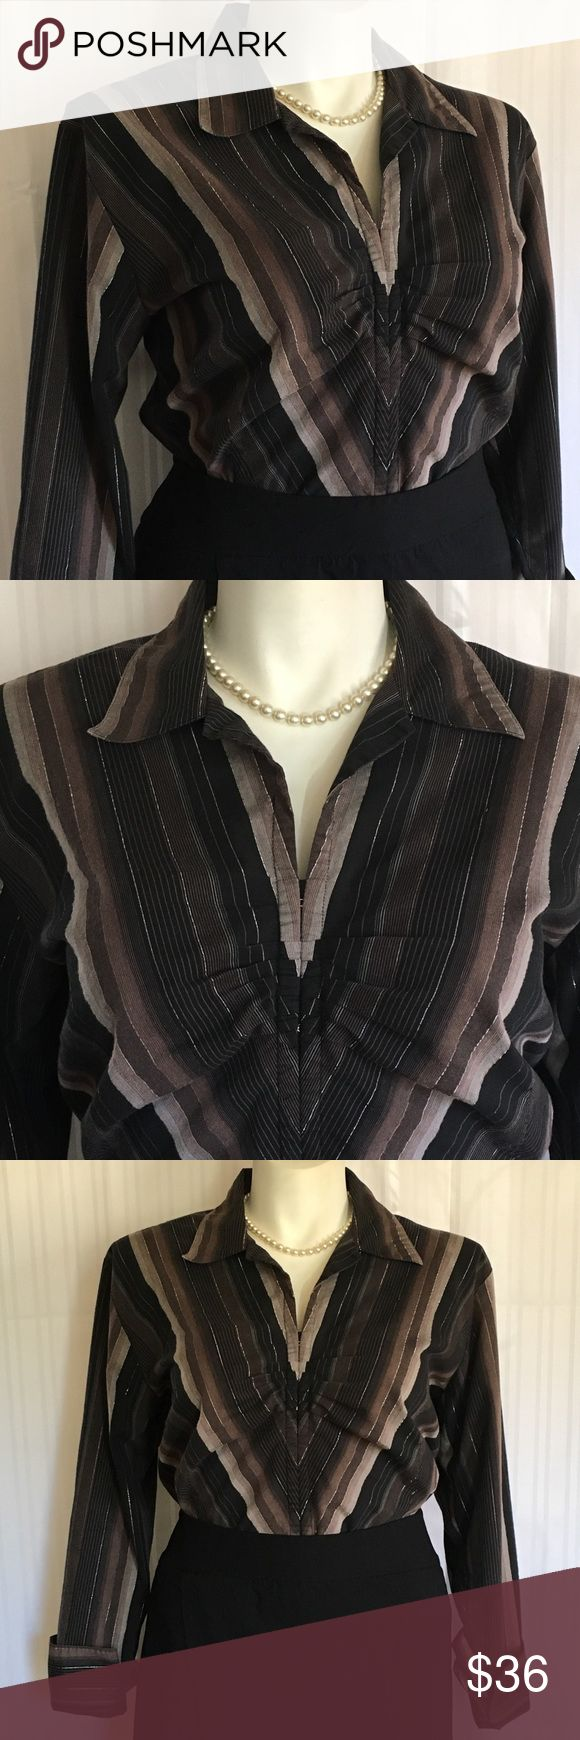 🎉JUST IN🎉 EUC Black & gray stripe stretch blouse 🎉JUST IN🎉 EUC Black & gray stripe stretch blouse/dress shirt with silver metallic pinstripes. Plus size 20 by Quizz Woman from Catherines. Measurements available upon request. 🚫No holds 🚫No Lowball Offers 🚫No Trades ✅Please submit reasonable offers via the offer button or 🎁 bundle & save! Catherines Tops Blouses